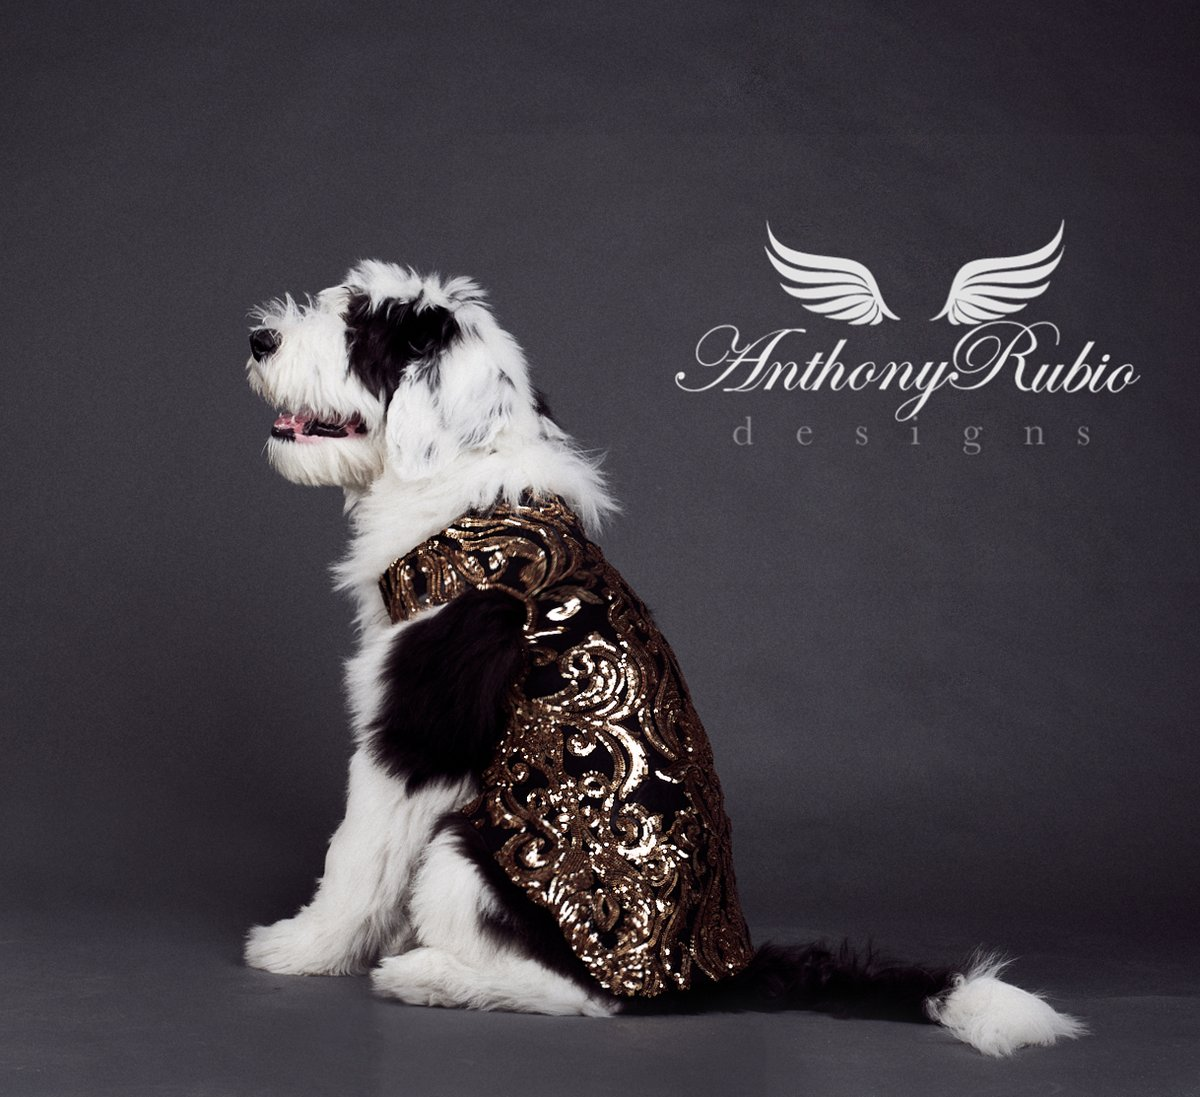 Milo the #Sheepadoodle, a puppy here shining bright. You are the light that's shining through.  Canine Couture by Anthony Rubio Designs.  #NYFW2020 #DogFashion #DogModel #FashionPhotography #WeeklyFluff #DogsOfNYC  #FashionEditorial #dogsinclothes #NYFW